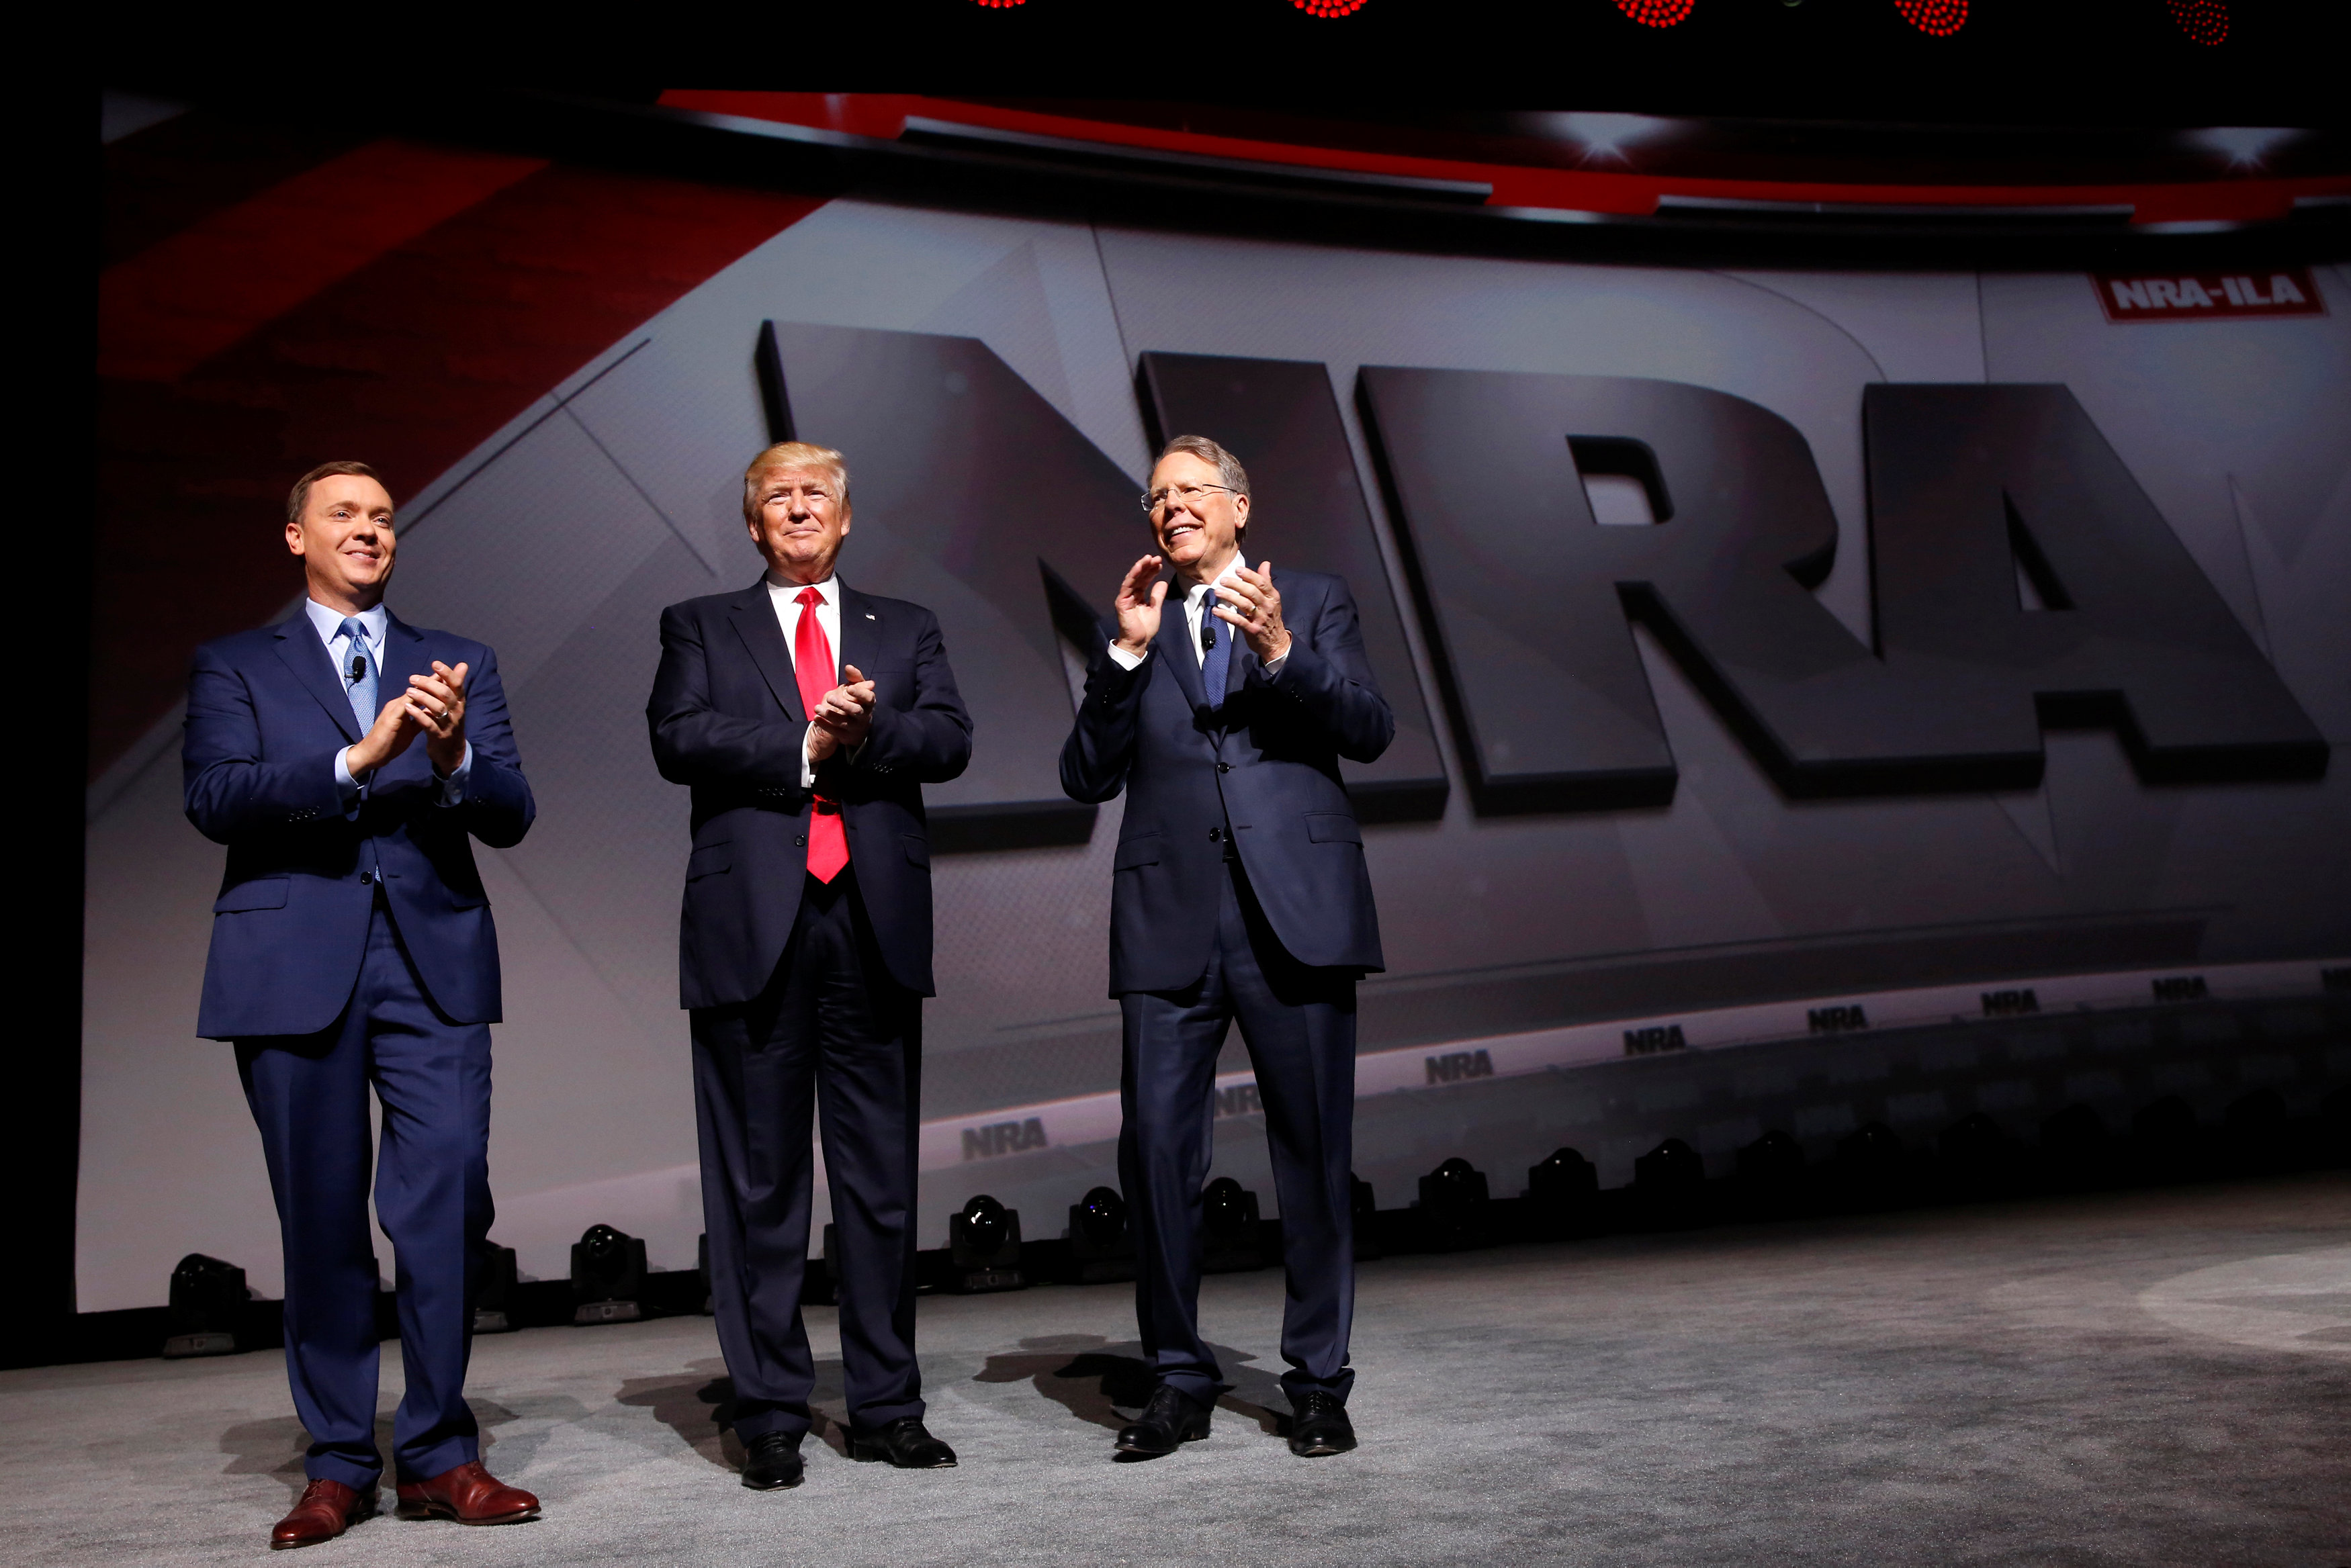 NRA Executive Director Chris Cox (L) and Executive Vice President and CEO Wayne LaPierre (R) welcome President Donald Trump (C) onstage to deliver remarks at the National Rifle Association (NRA) Leadership Forum at the Georgia World Congress Center in Atlanta, Ga., on April 28, 2017. (REUTERS/Jonathan Ernst)